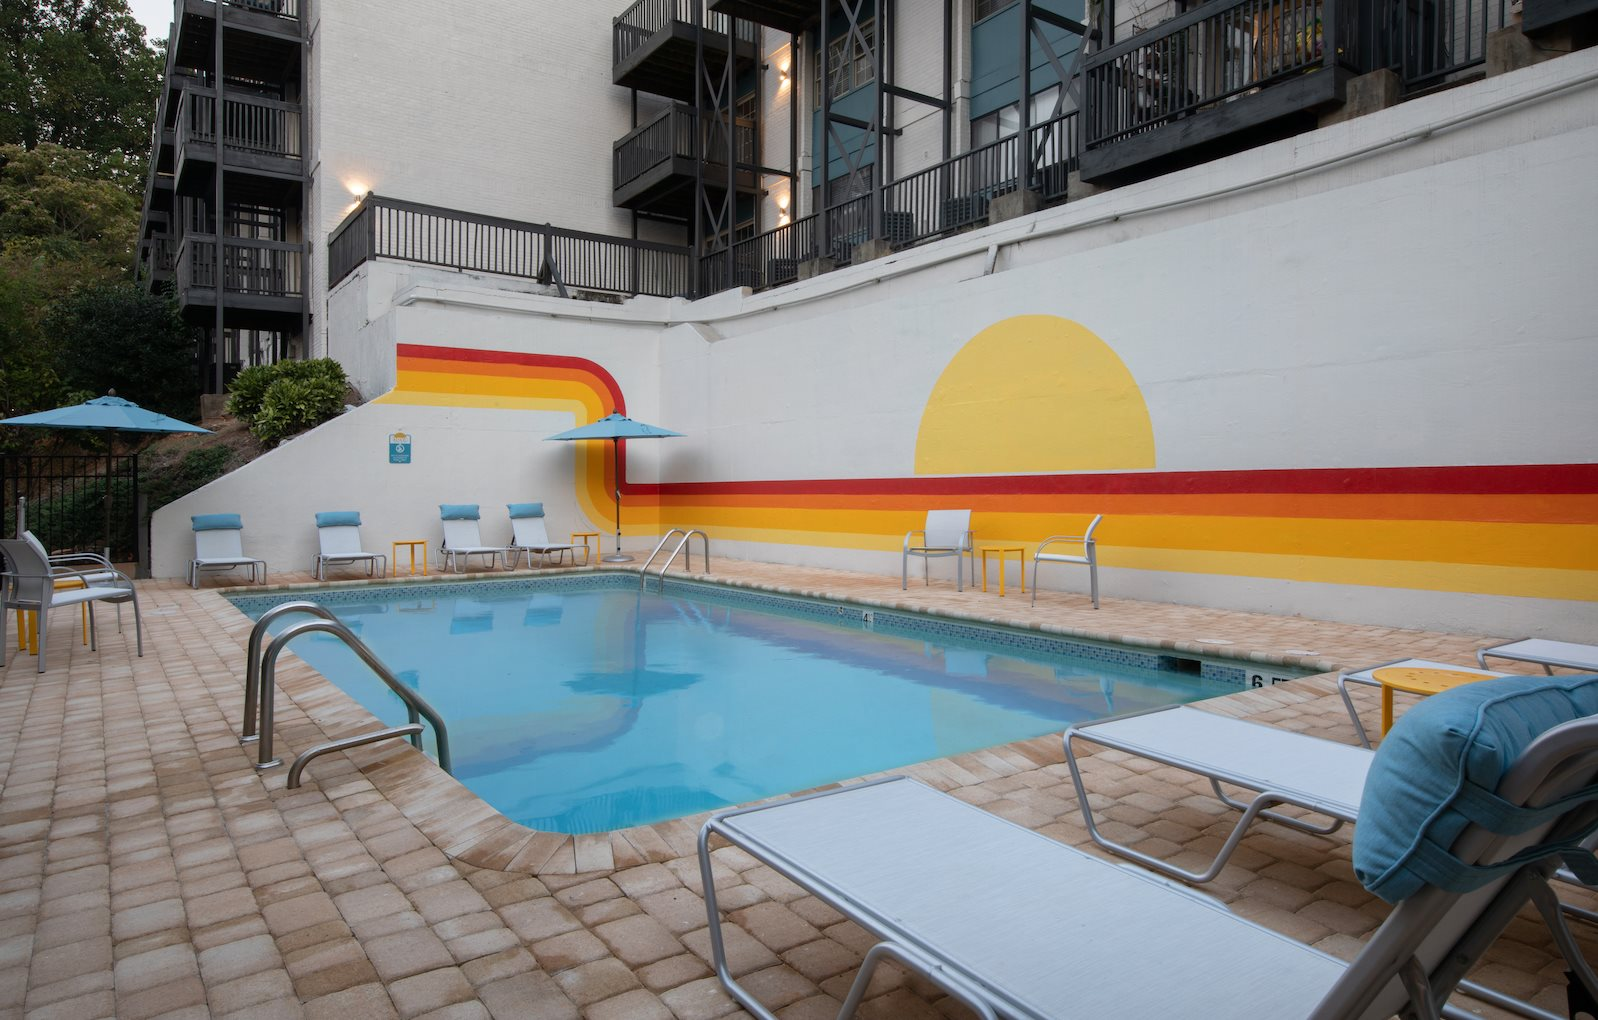 Renovated pool and sundeck with lounge furniture and mural